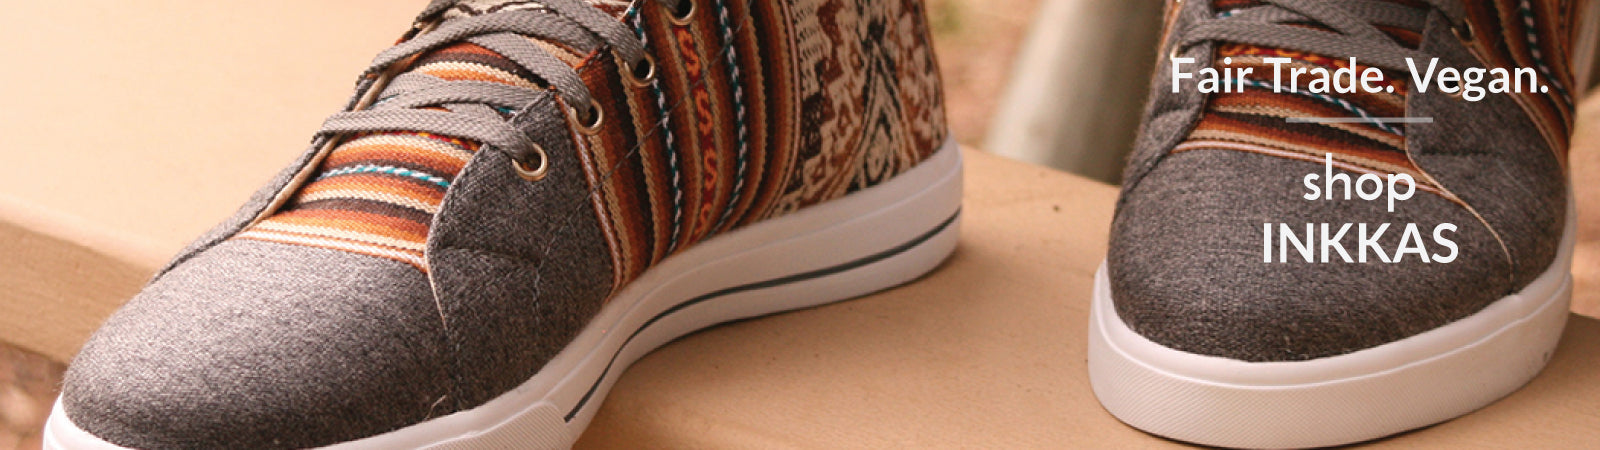 Shop Inkkas fair trade sneakers and shoes.